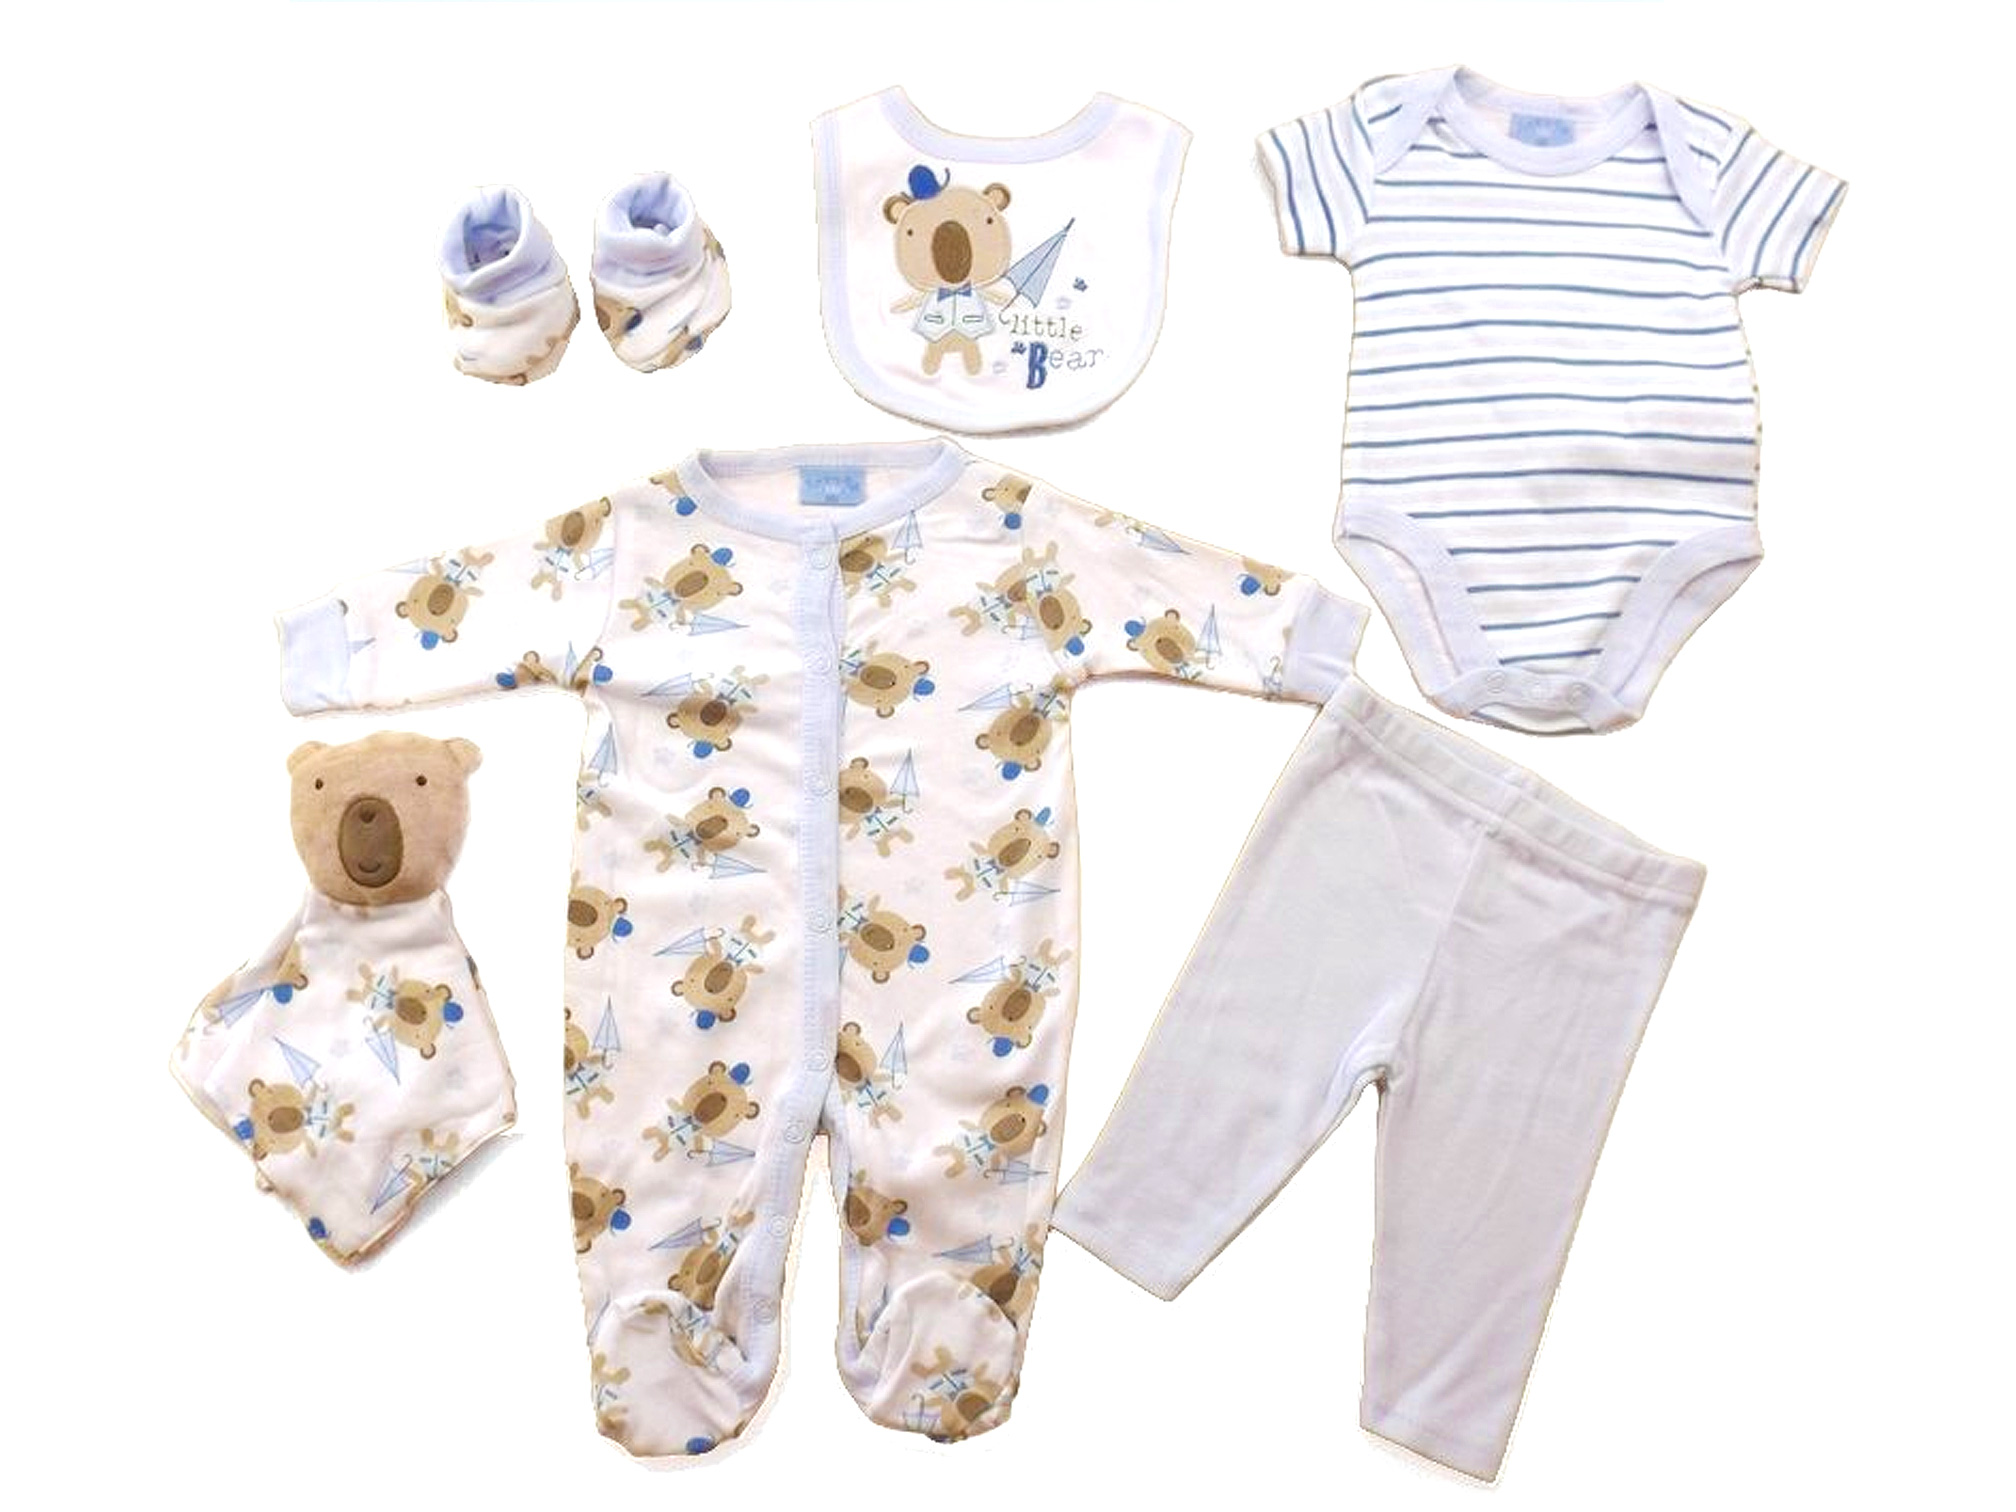 b6bda75fb Bear 7-Piece Layette Set